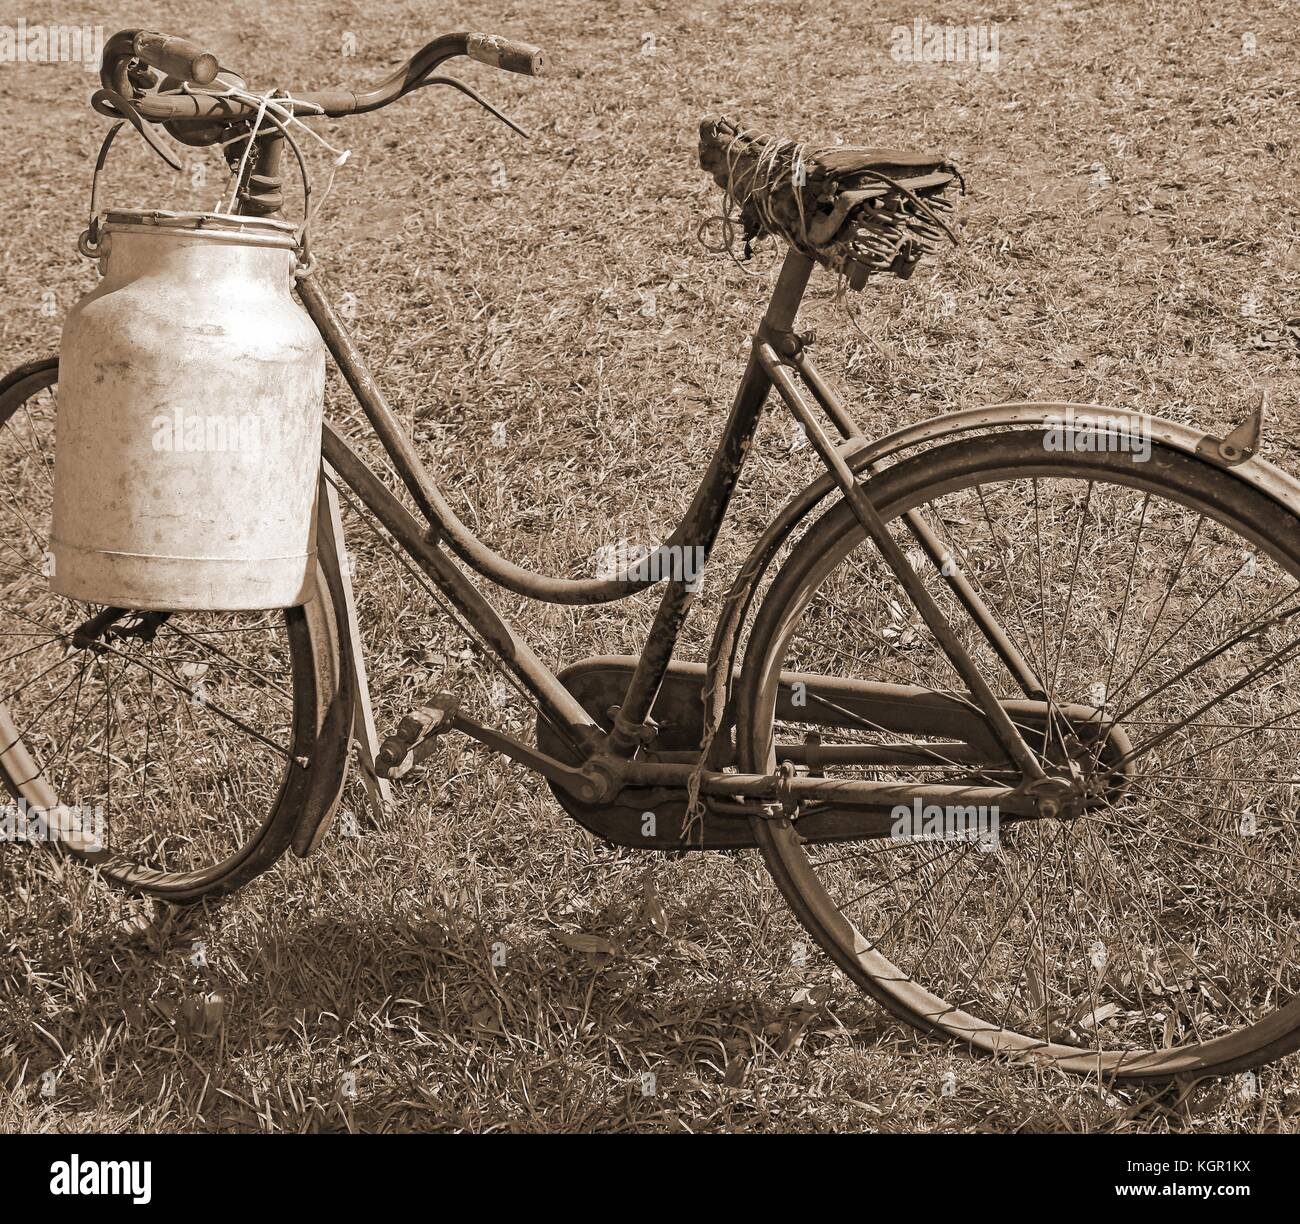 ancient milking bike with bin for milk transport and sepia effect - Stock Image